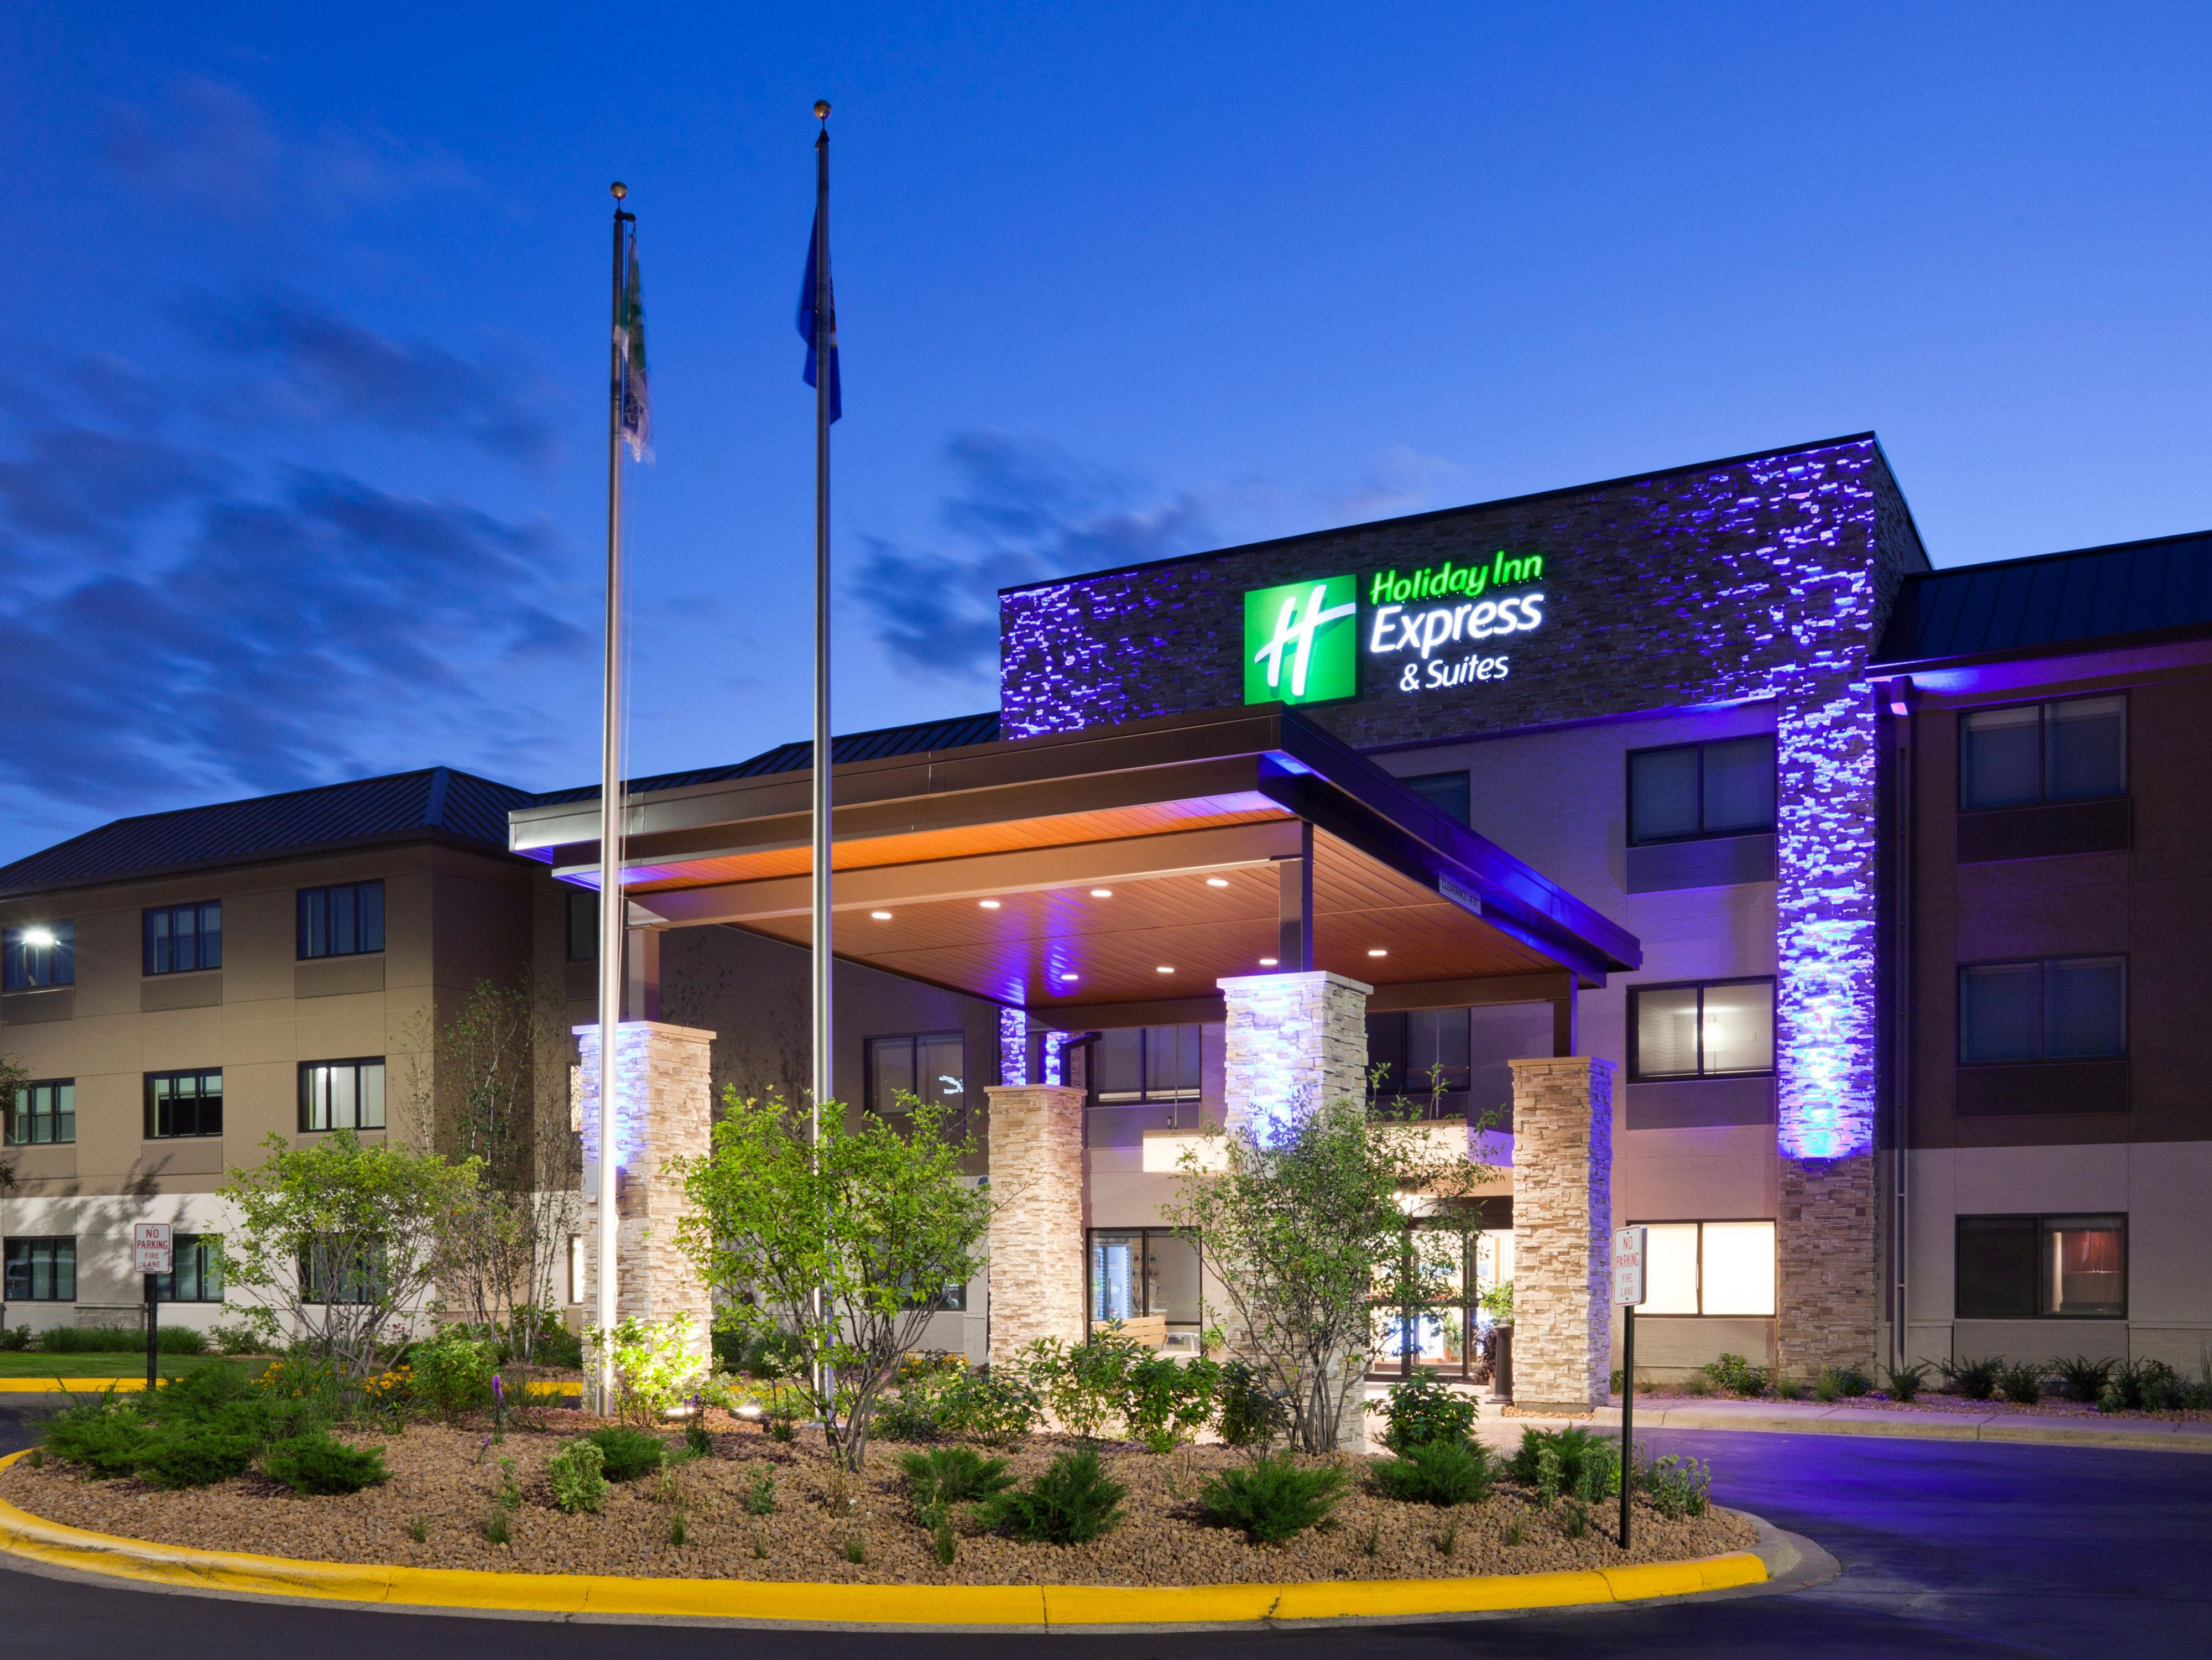 Holiday Inn Express (Minneapolis) Golden Valley welcomes you!